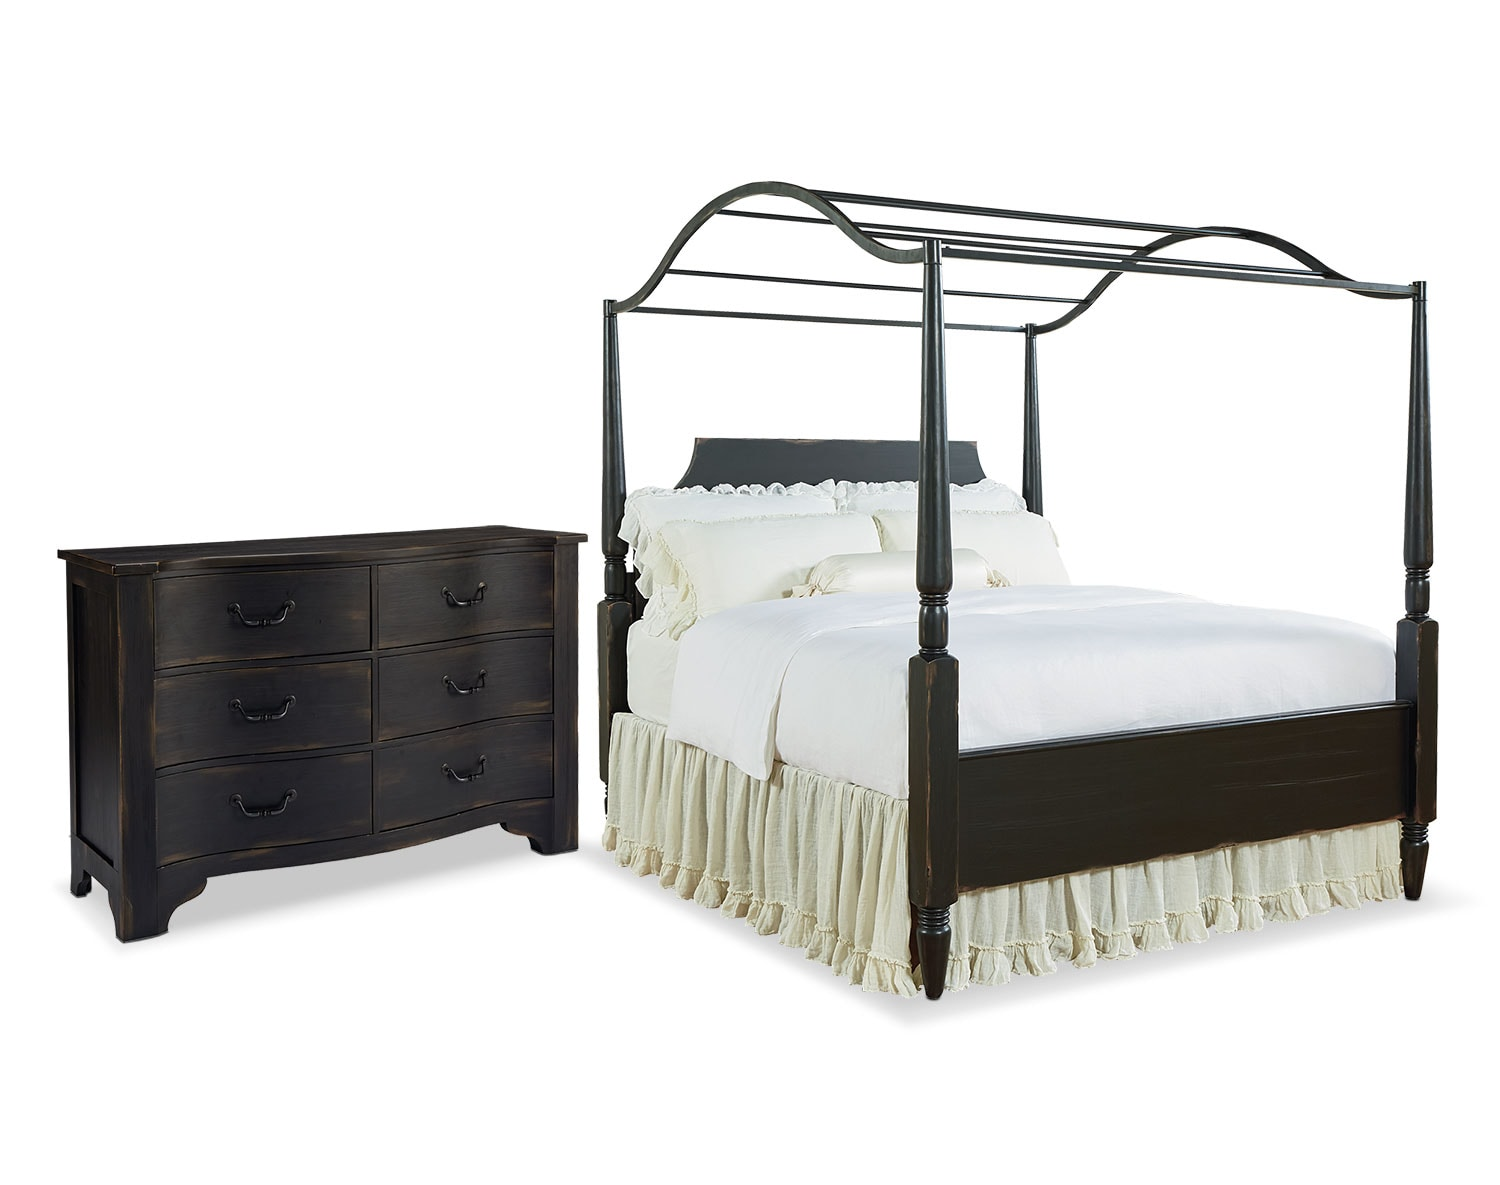 The Farmhouse Carriage Canopy Bedroom Collection